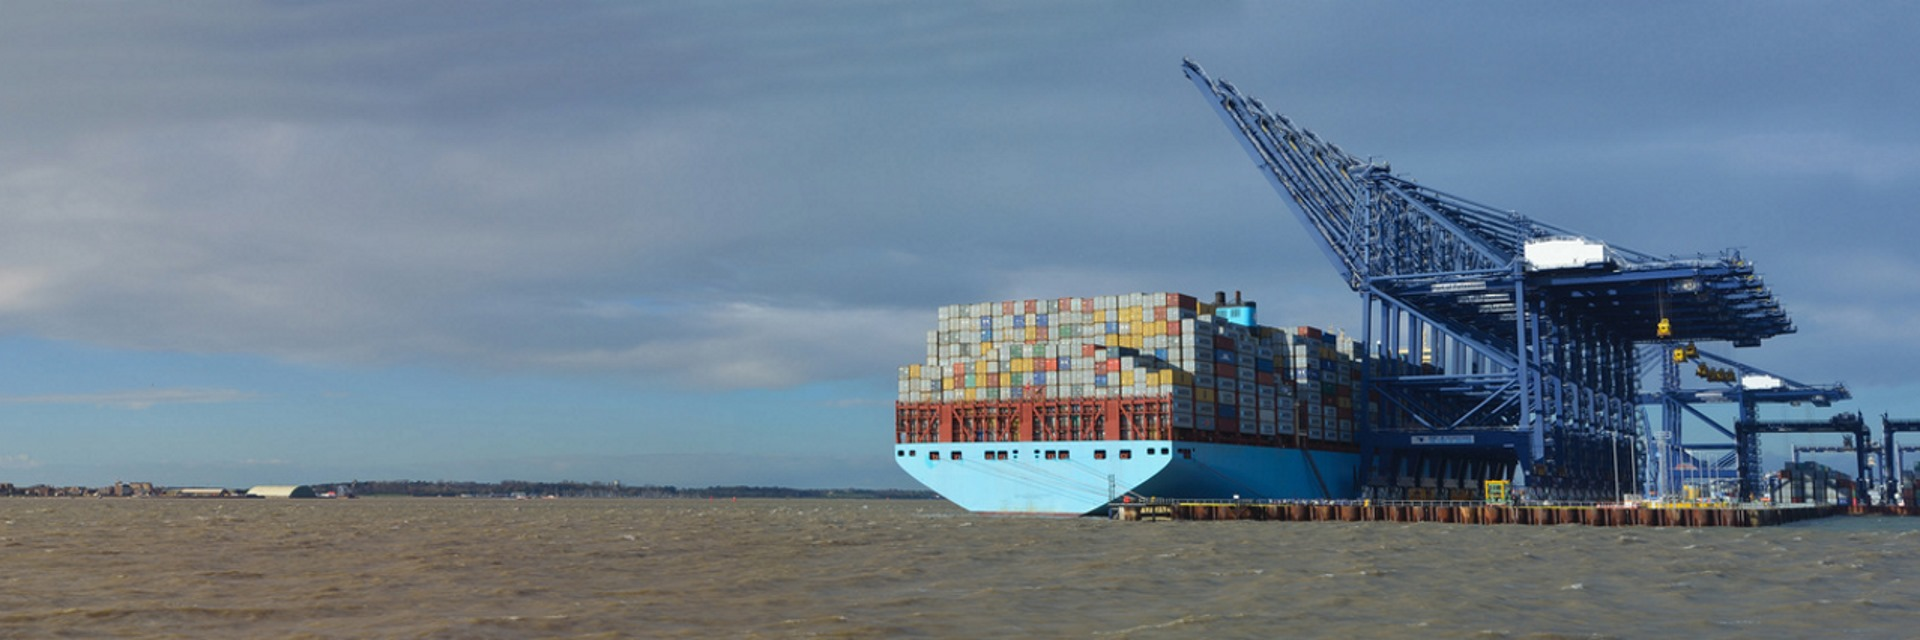 Container ship loading at Felixstowe for Eupean Pallet Services